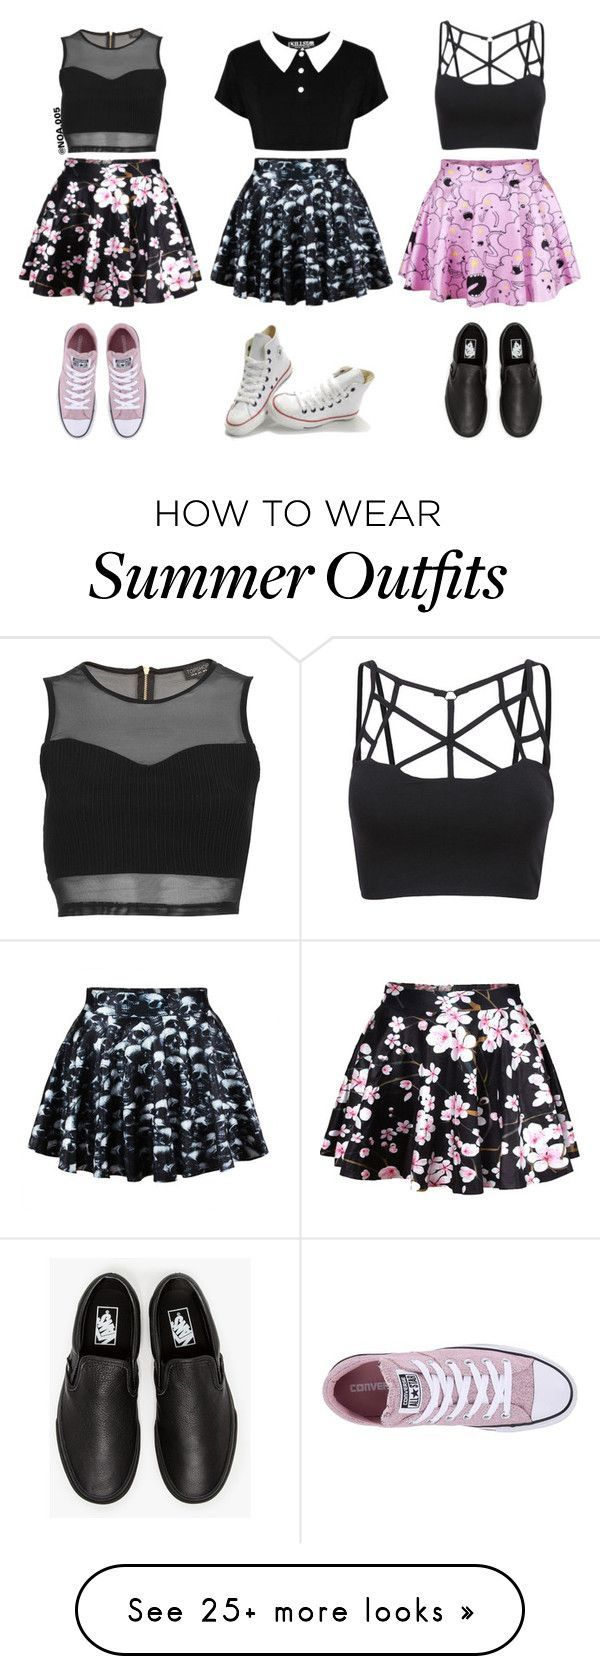 Find More at => http://feedproxy.google.com/~r/amazingoutfits/~3/Iw7rj0S_uoM/AmazingOutfits.page